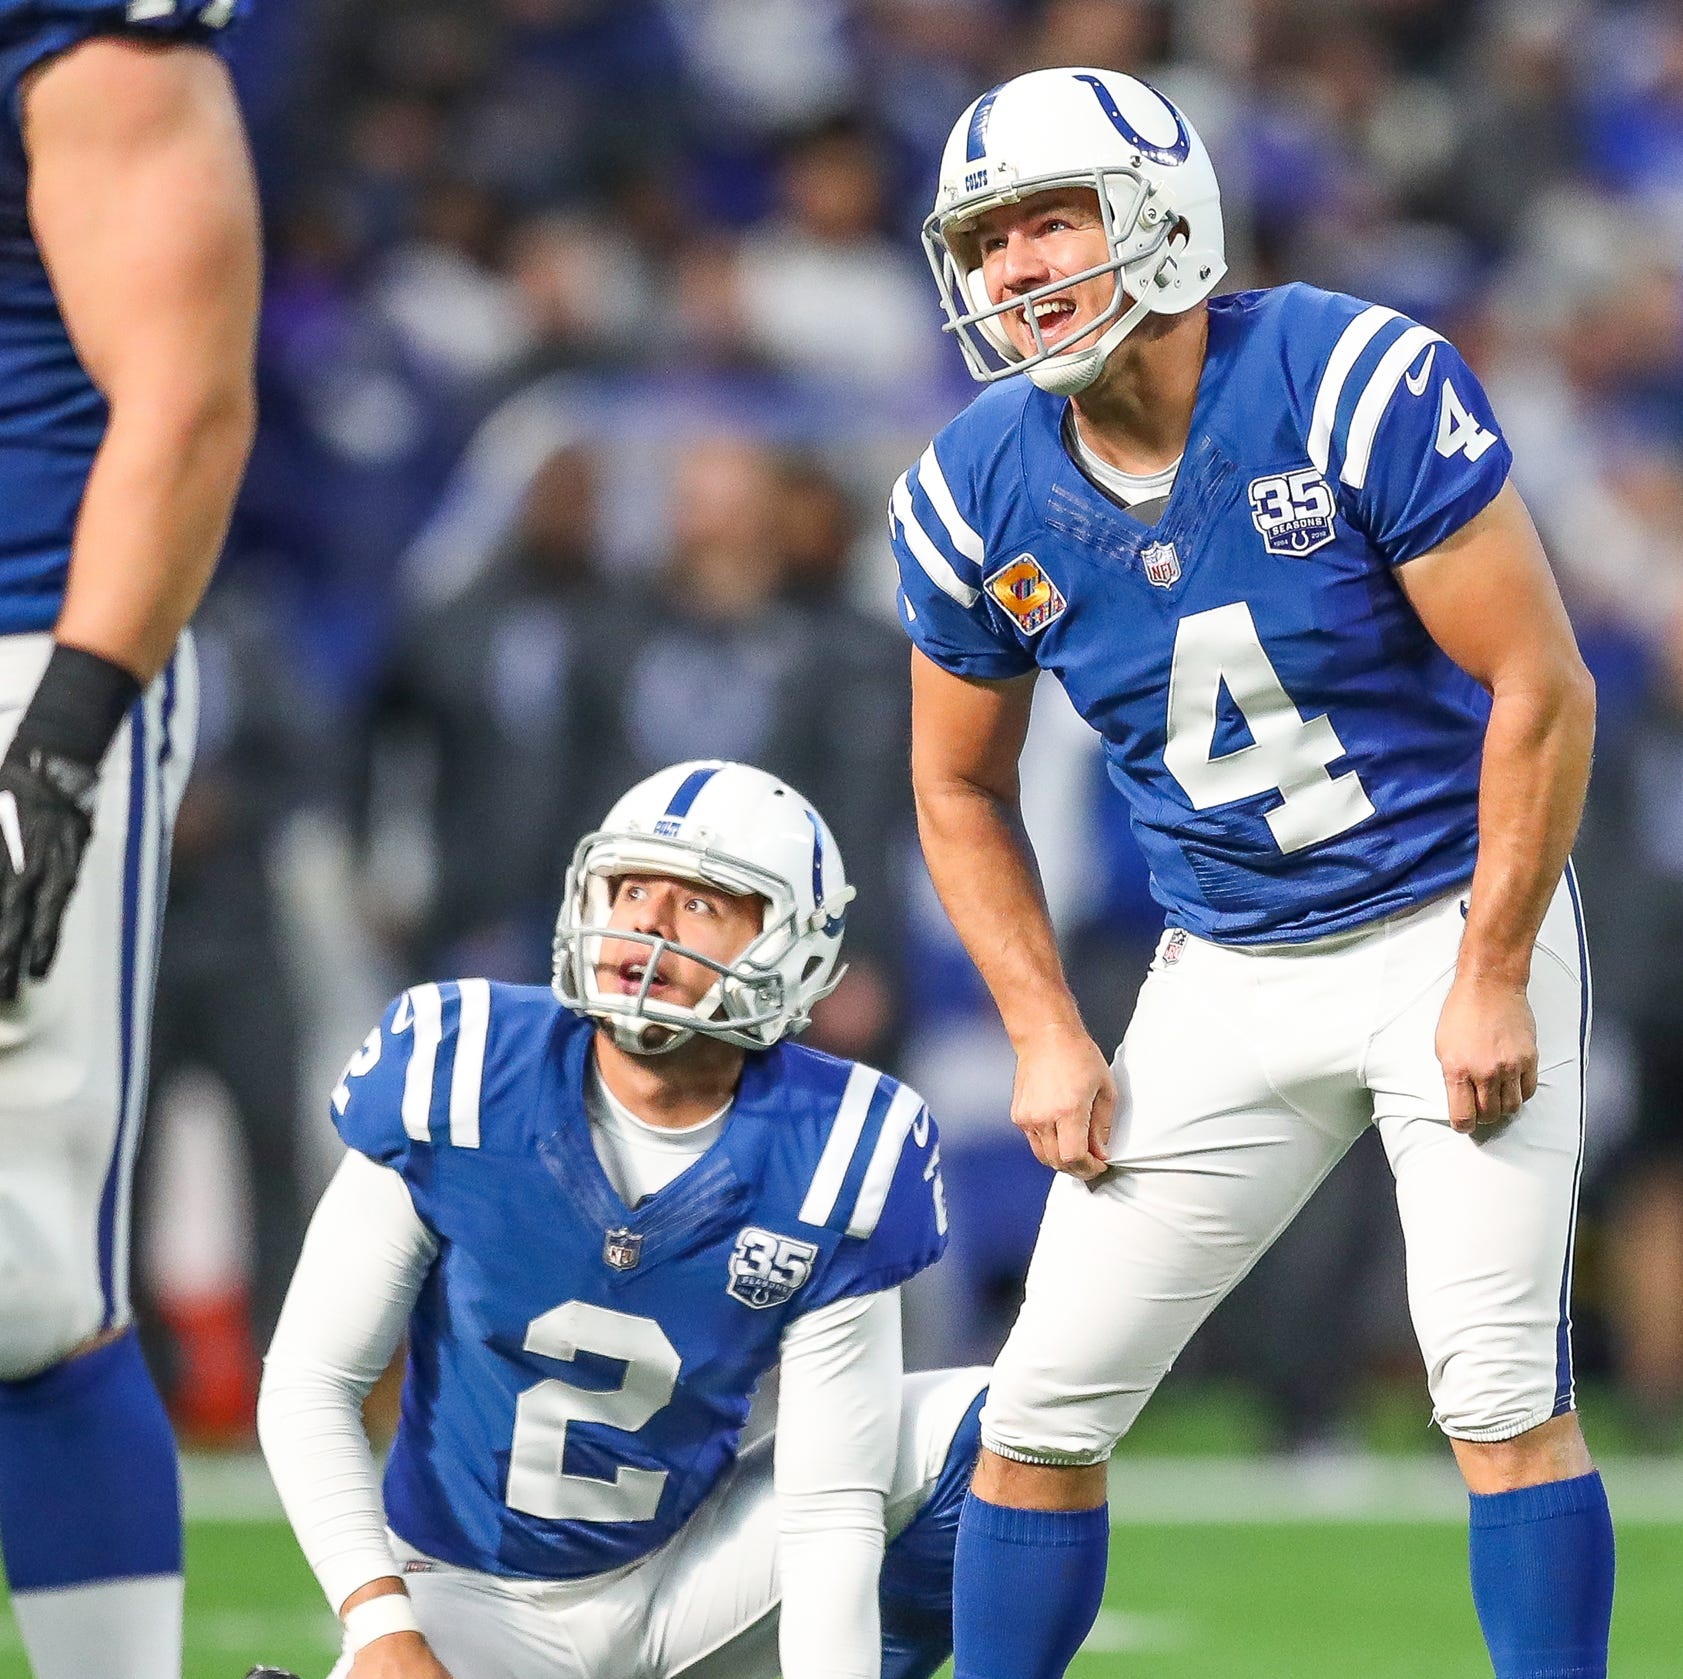 Colts' Adam Vinatieri: 'I'll be on the injury report tomorrow'